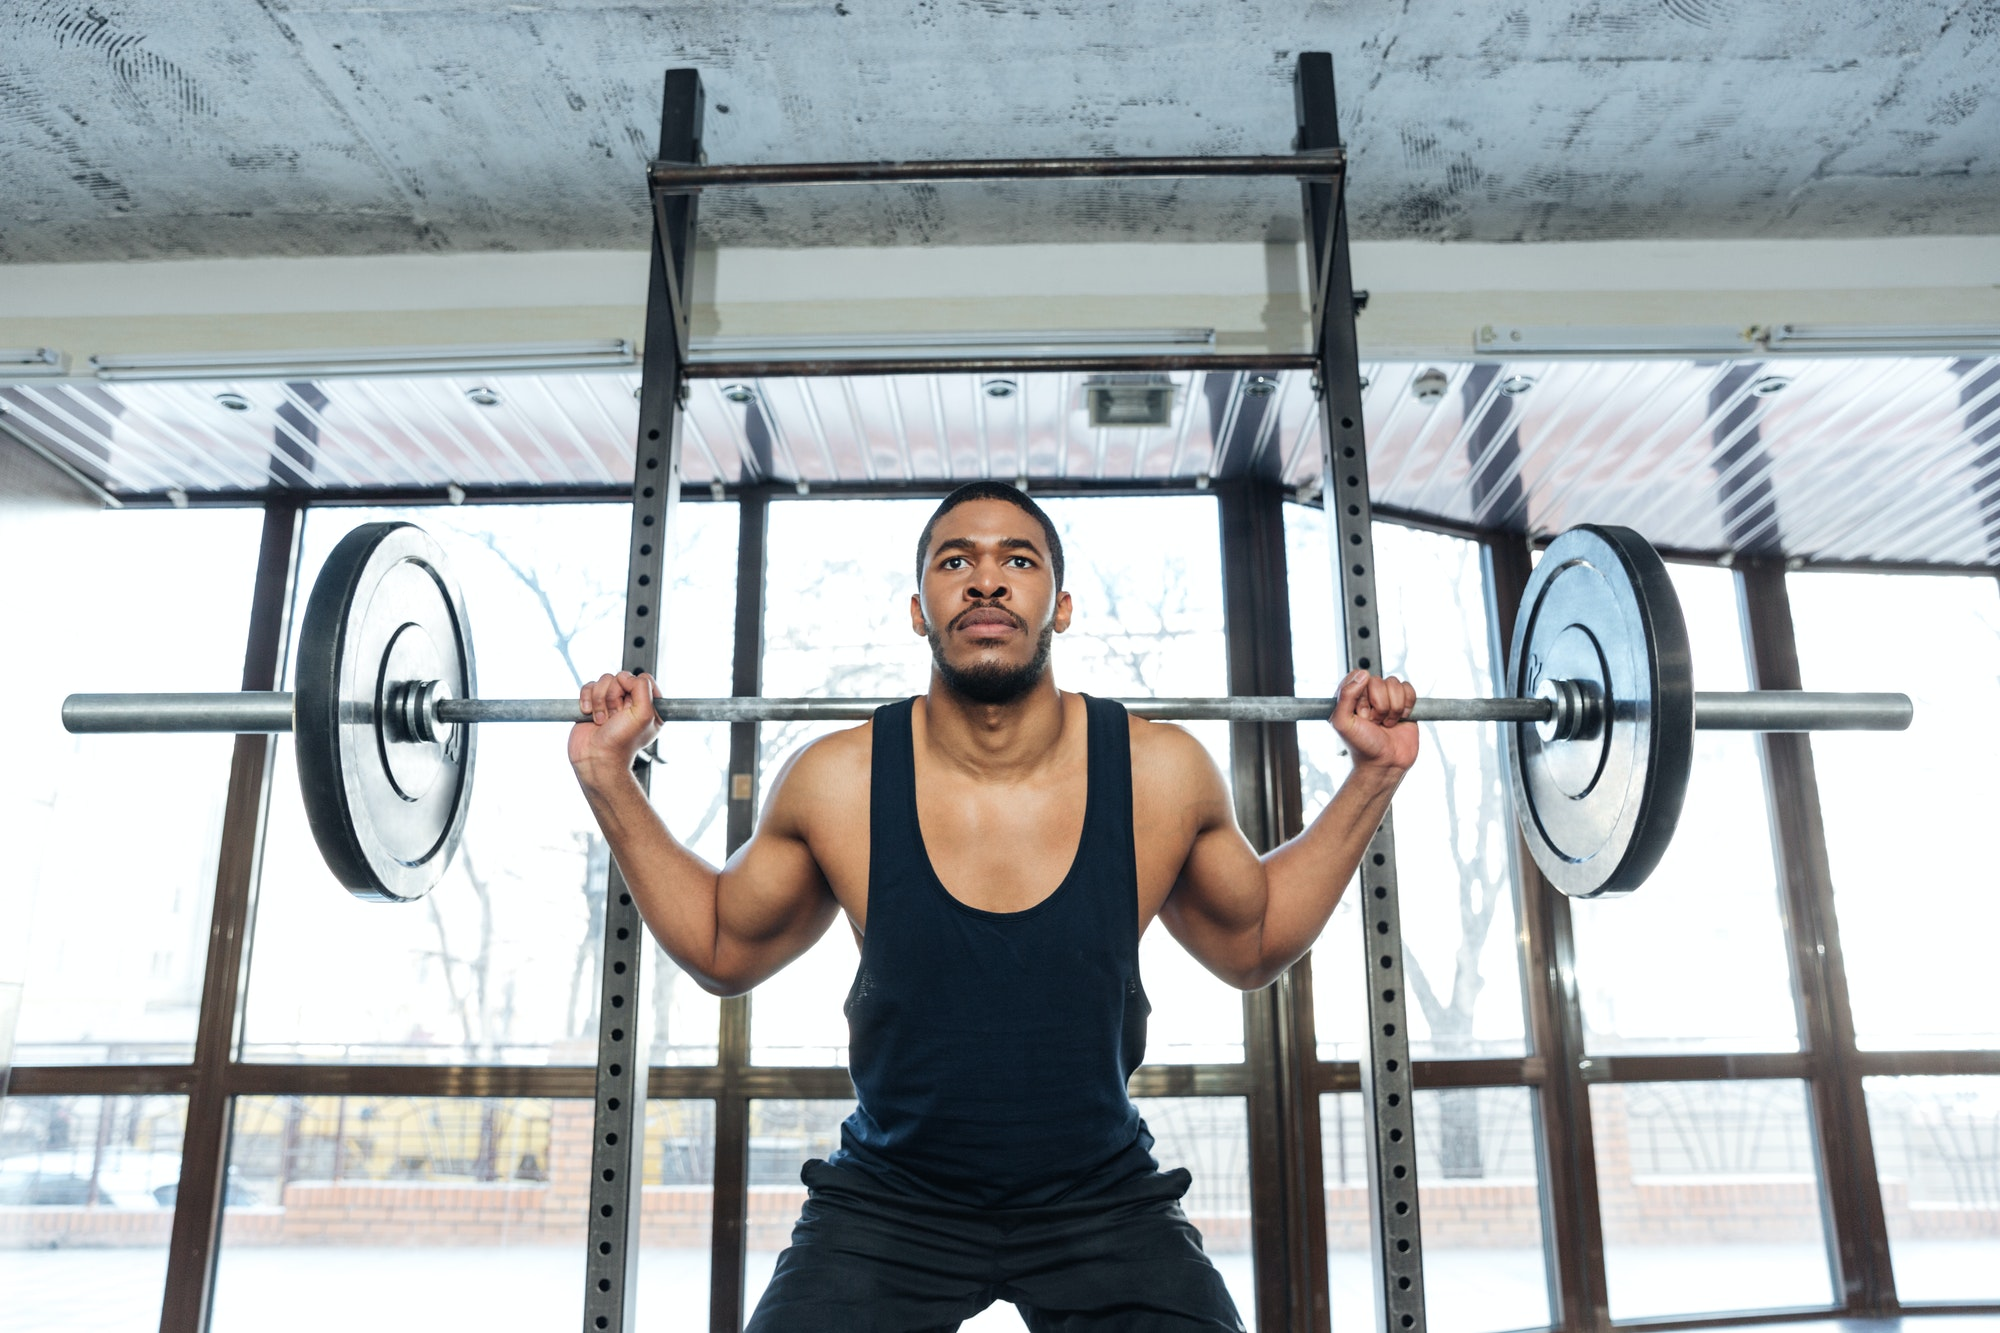 Handsome muscular weightlifter at gym doing squats